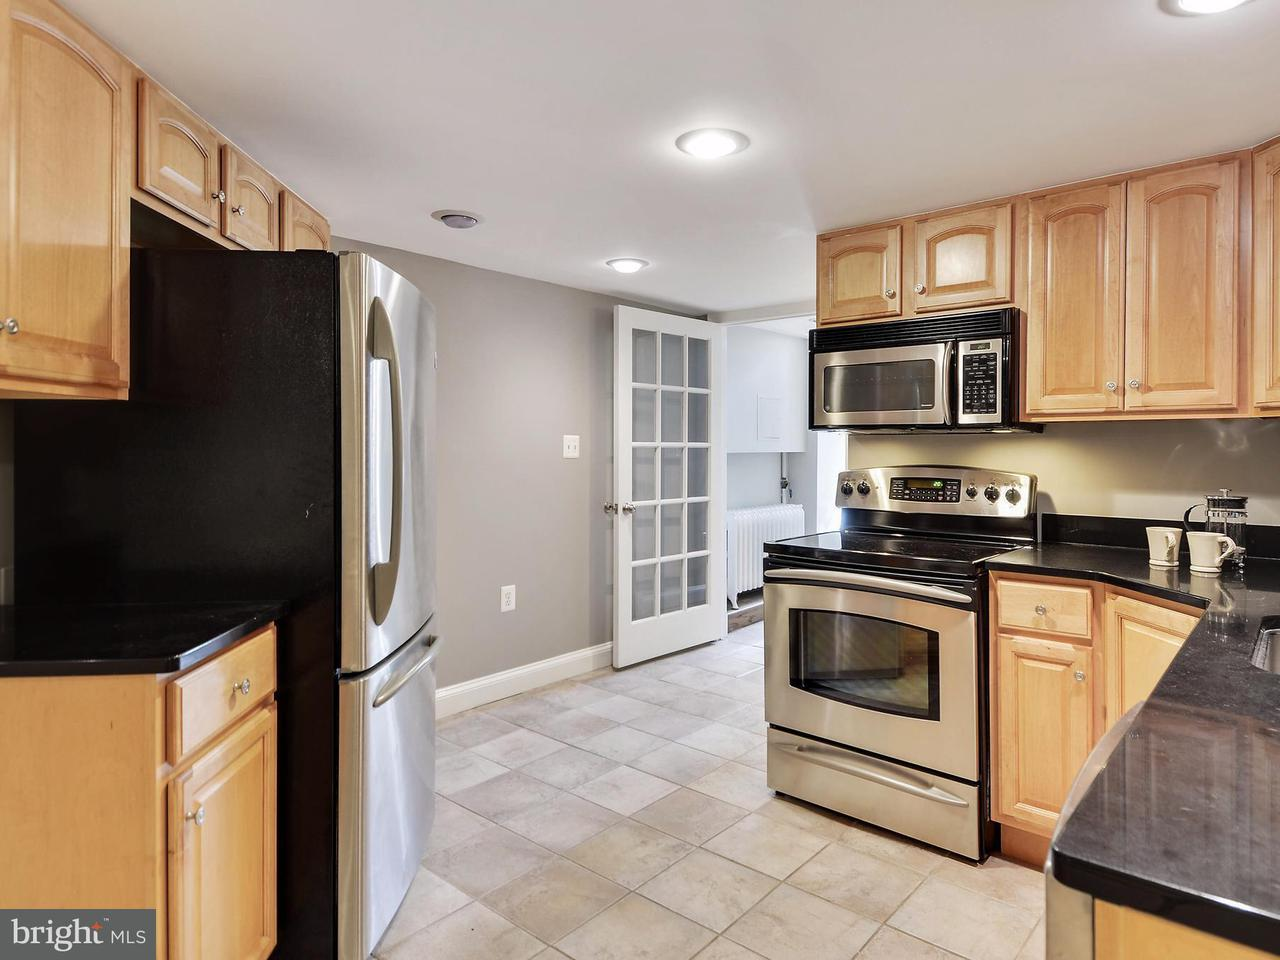 Additional photo for property listing at 1320 Riggs St Nw 1320 Riggs St Nw Washington, Distretto Di Columbia 20009 Stati Uniti